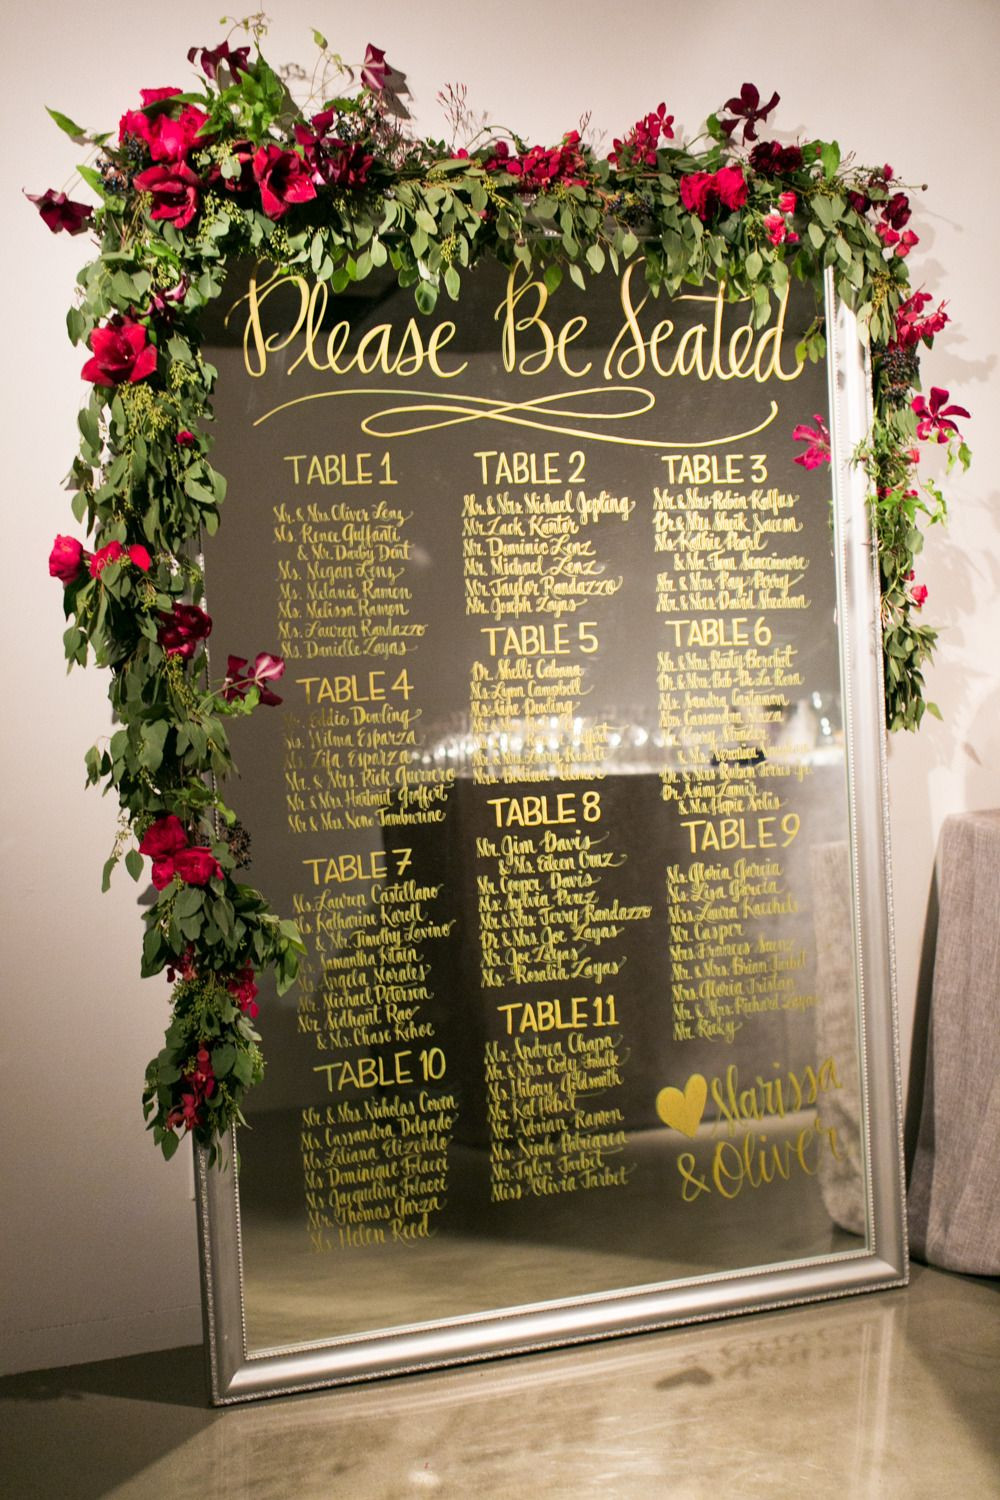 Best ideas about DIY Wedding Seating Chart . Save or Pin 30 Most Popular Seating Chart Ideas For Your Wedding Day Now.